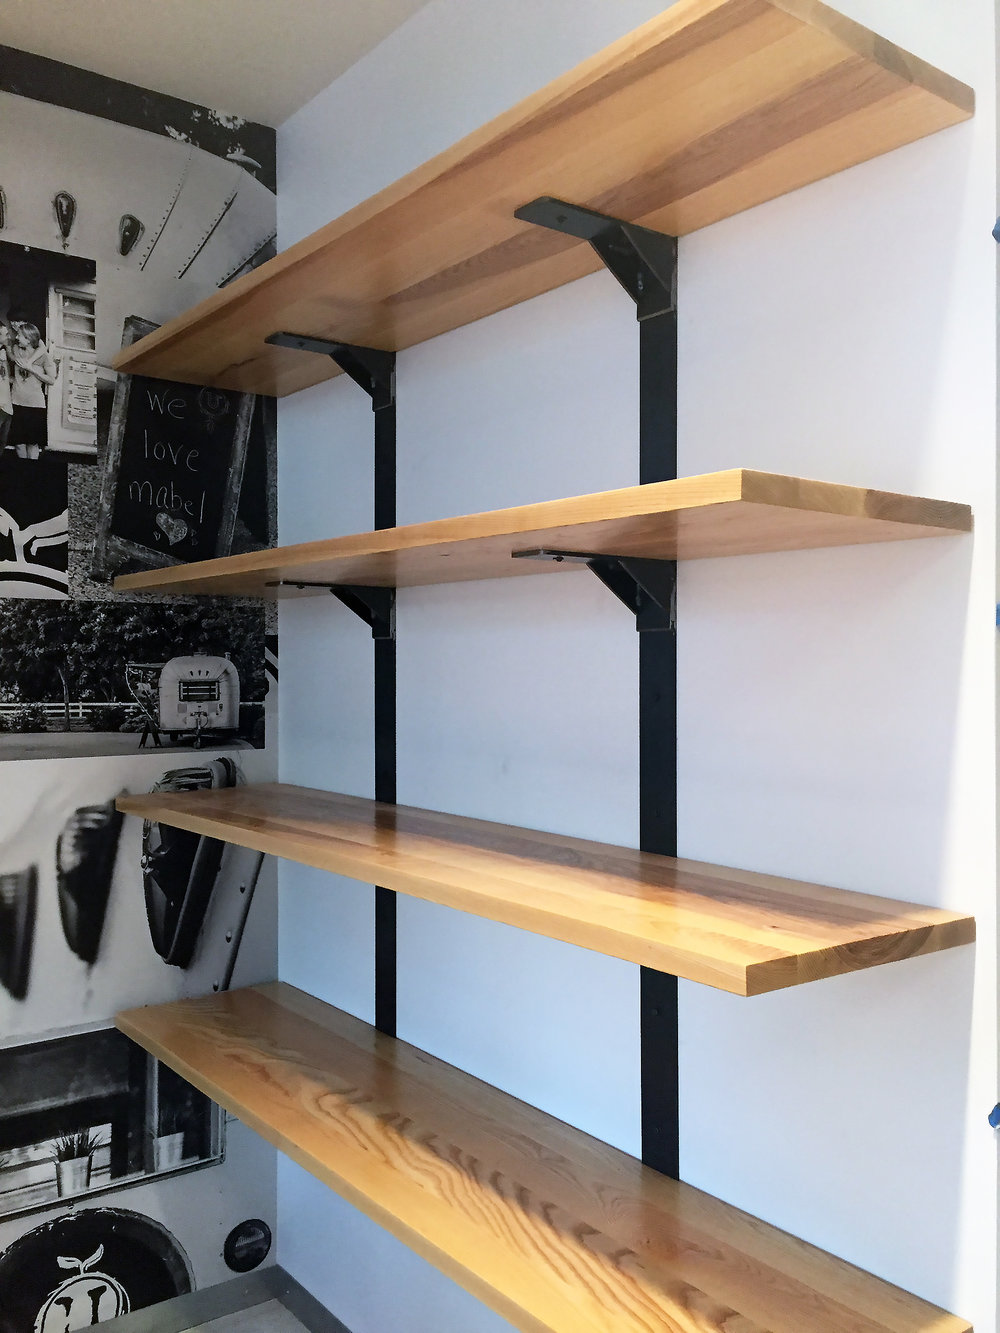 Uprooted Shelving Empty.jpg